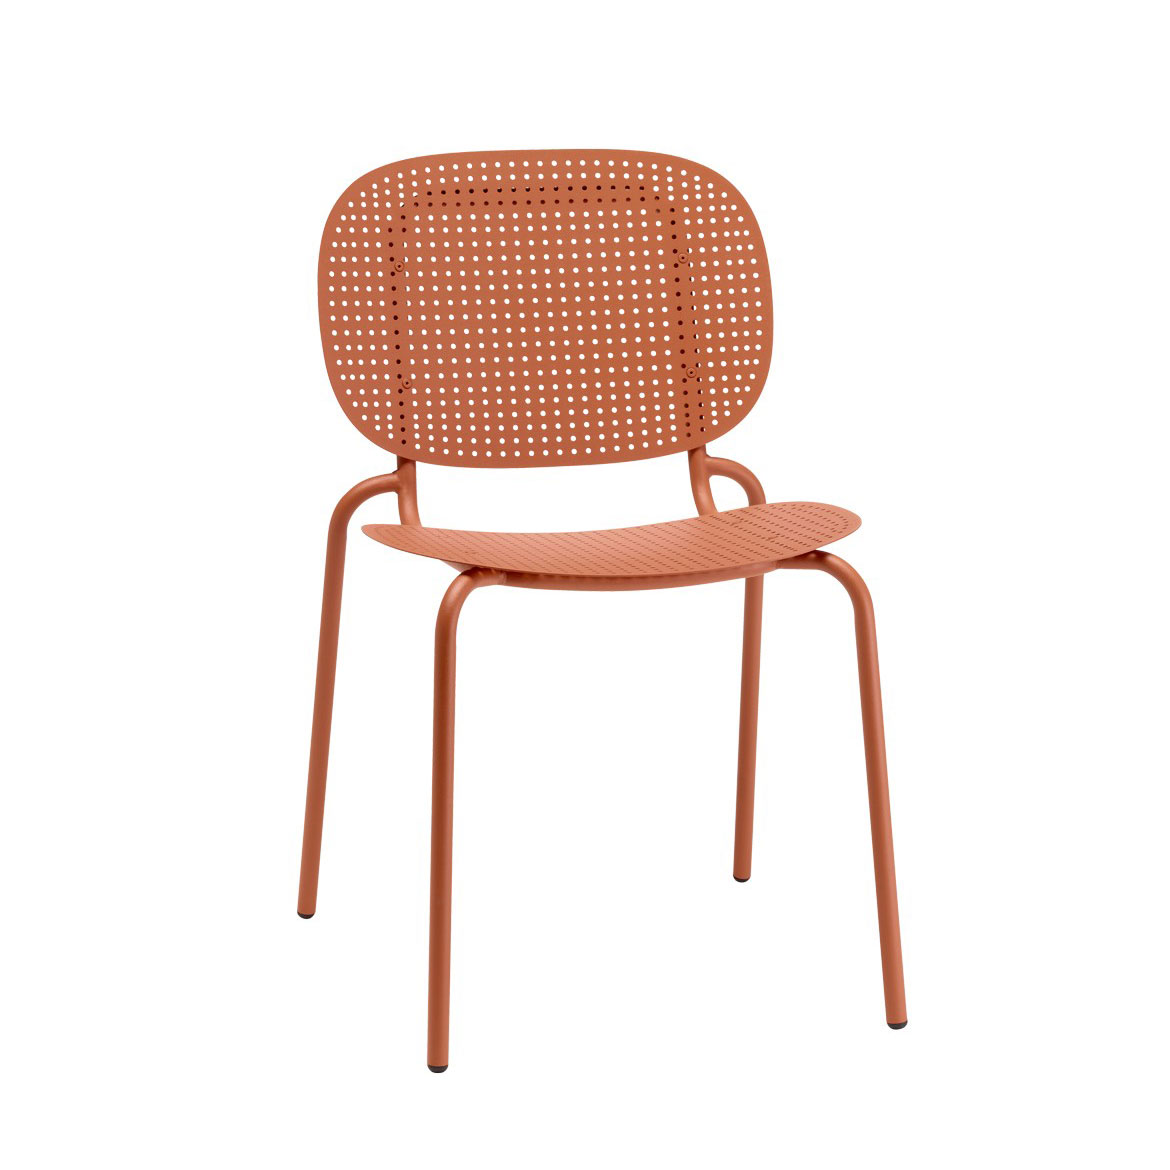 A single body in zinc and coated steel sheet, fixed to the slender frame, can act either as a backrest or as a seat. Stackable. Indoor/outdoor use.